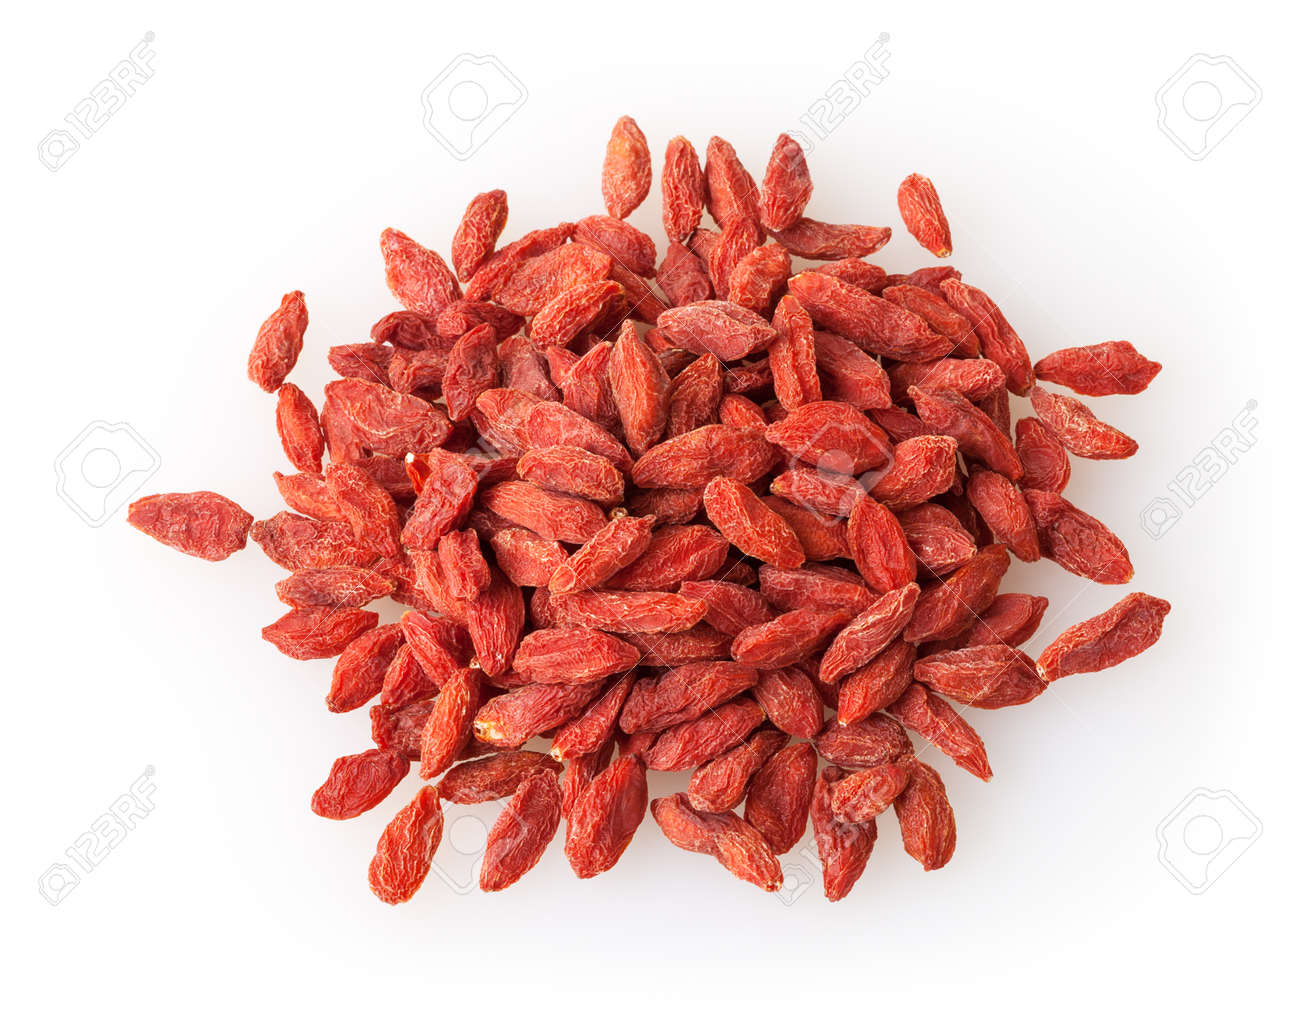 Heap of goji berries isolated on white background - 107997522